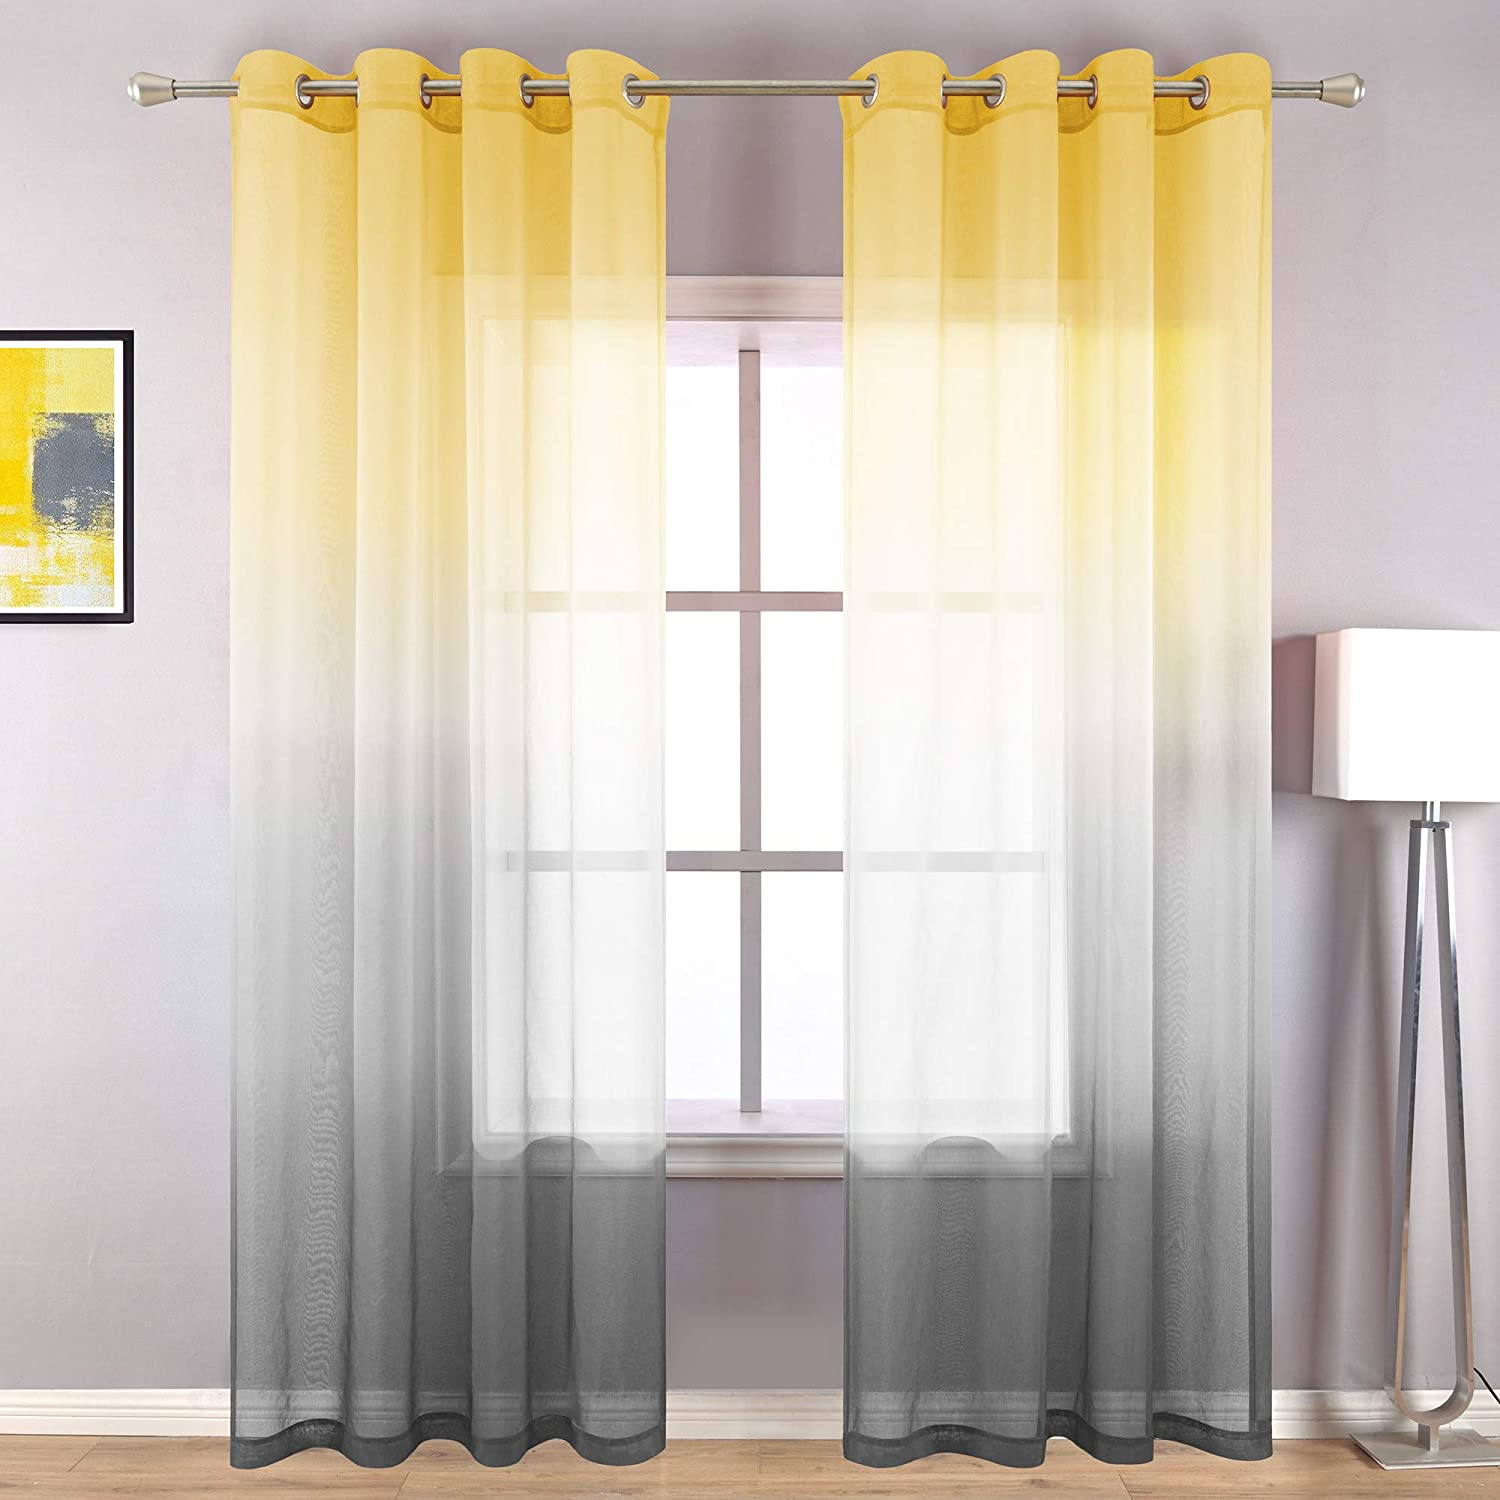 Yellow Curtains 96 Inches Long for Living Room Set of 2 Panels Grommet Drapes Window Sheer Curtain Panel for Bedroom Dining Room Yellow and Grey Gray 52x96 Inch Length